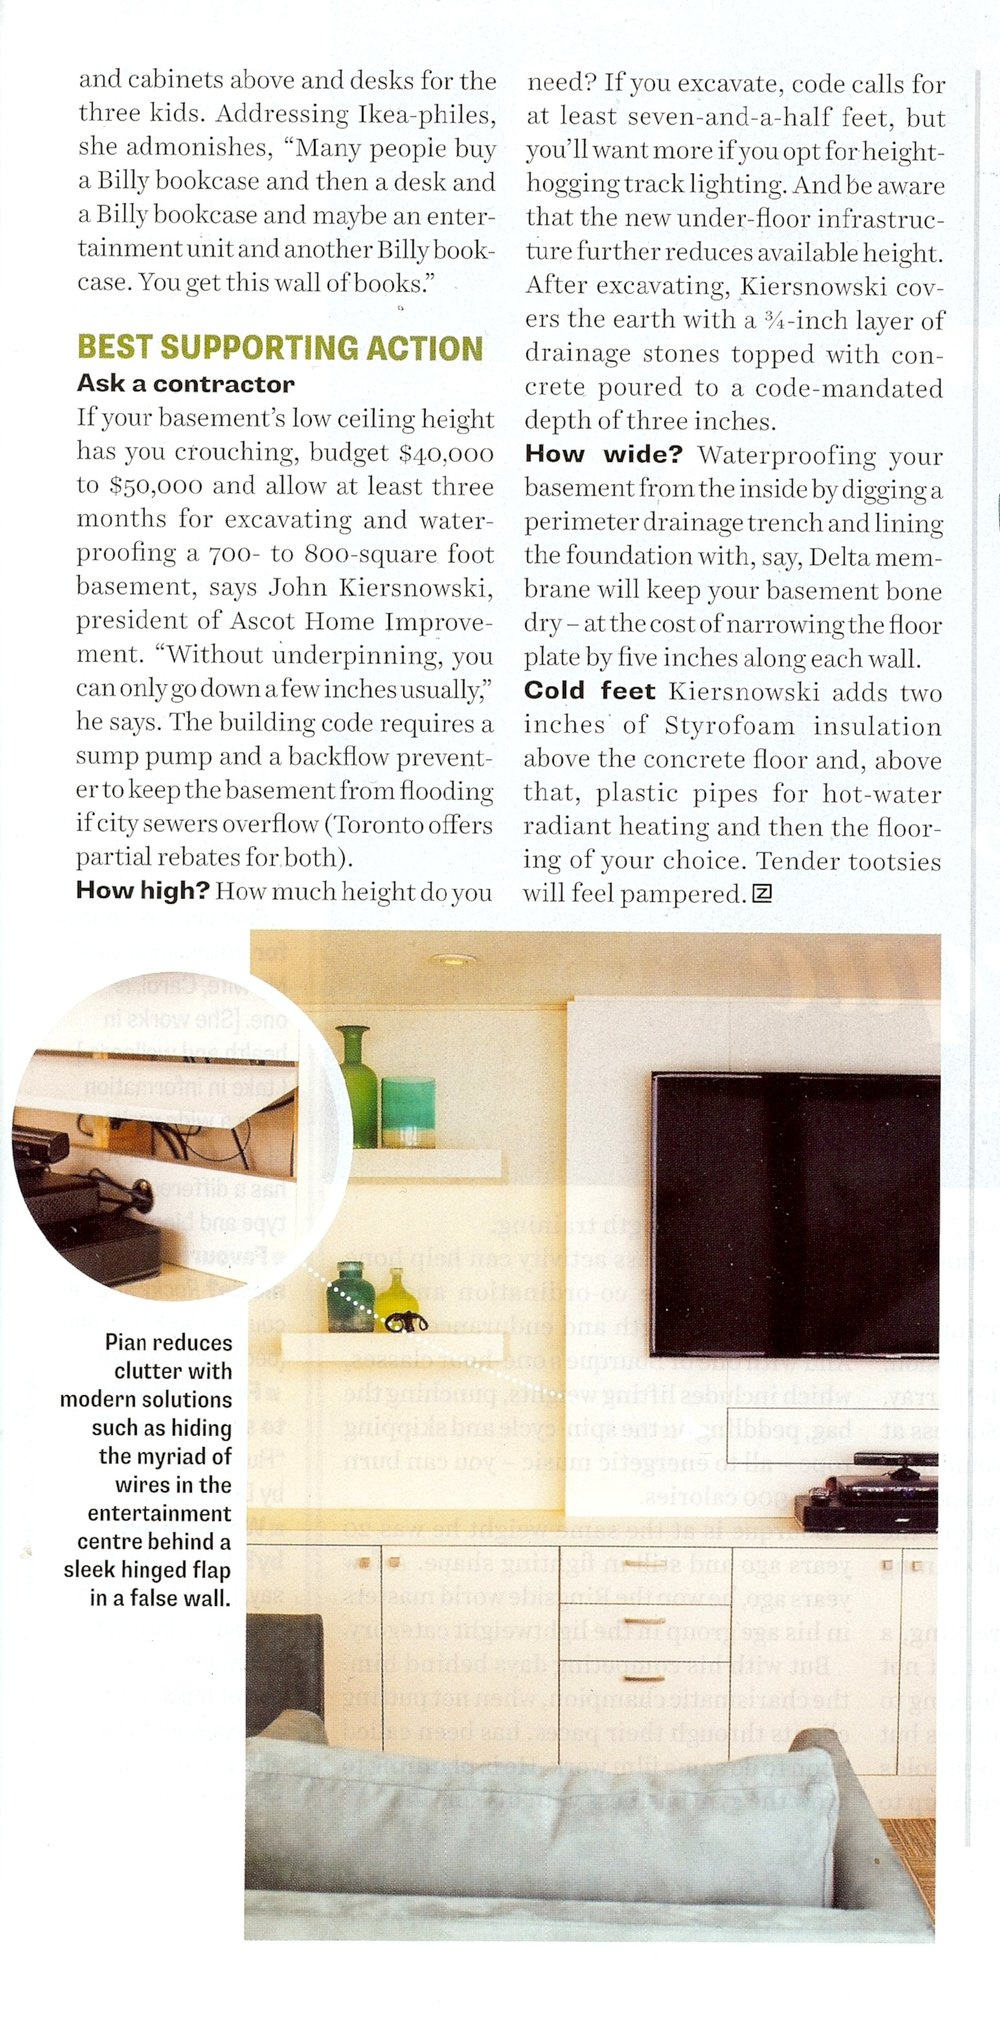 Zoomer_Interior_ArticleP2_June2015.jpeg